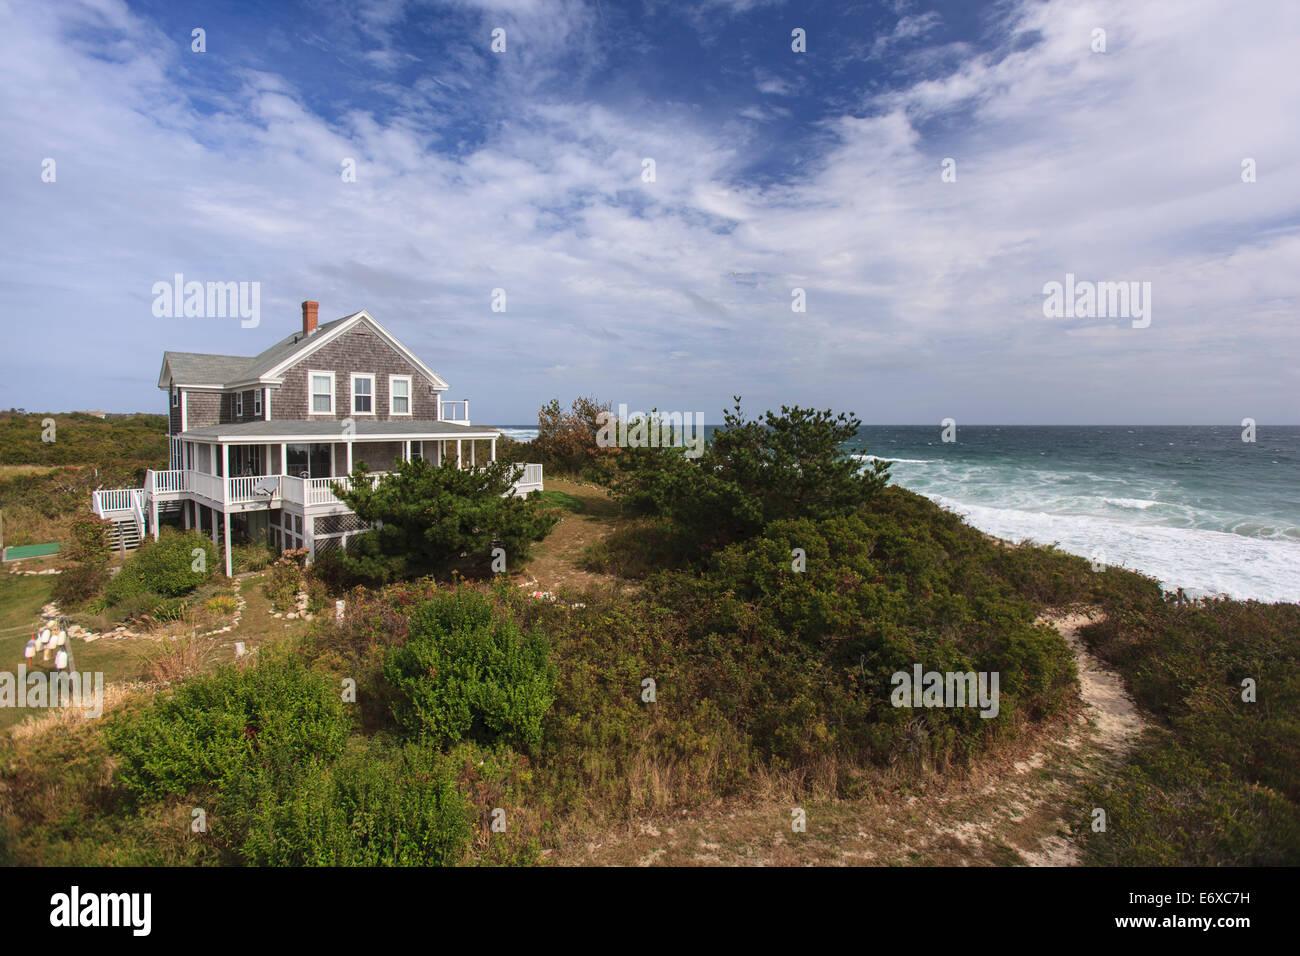 Vacation home on Block Island, Rhode Island, USA - Stock Image